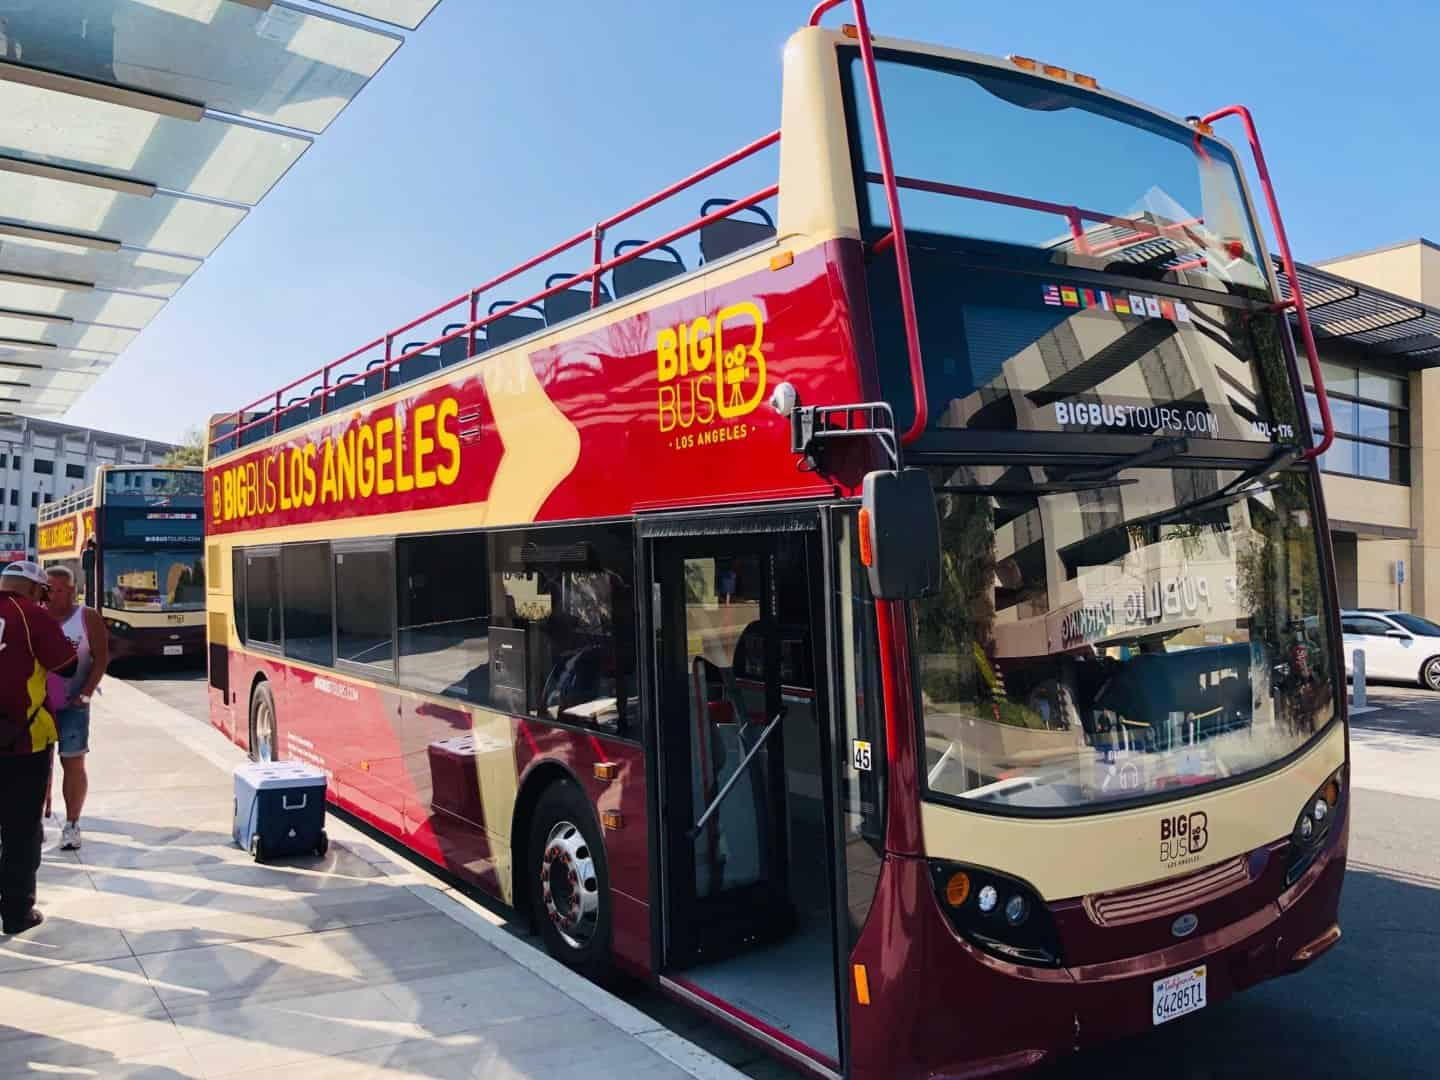 Big Bus tour - a must do for your Los Angeles bucket list!